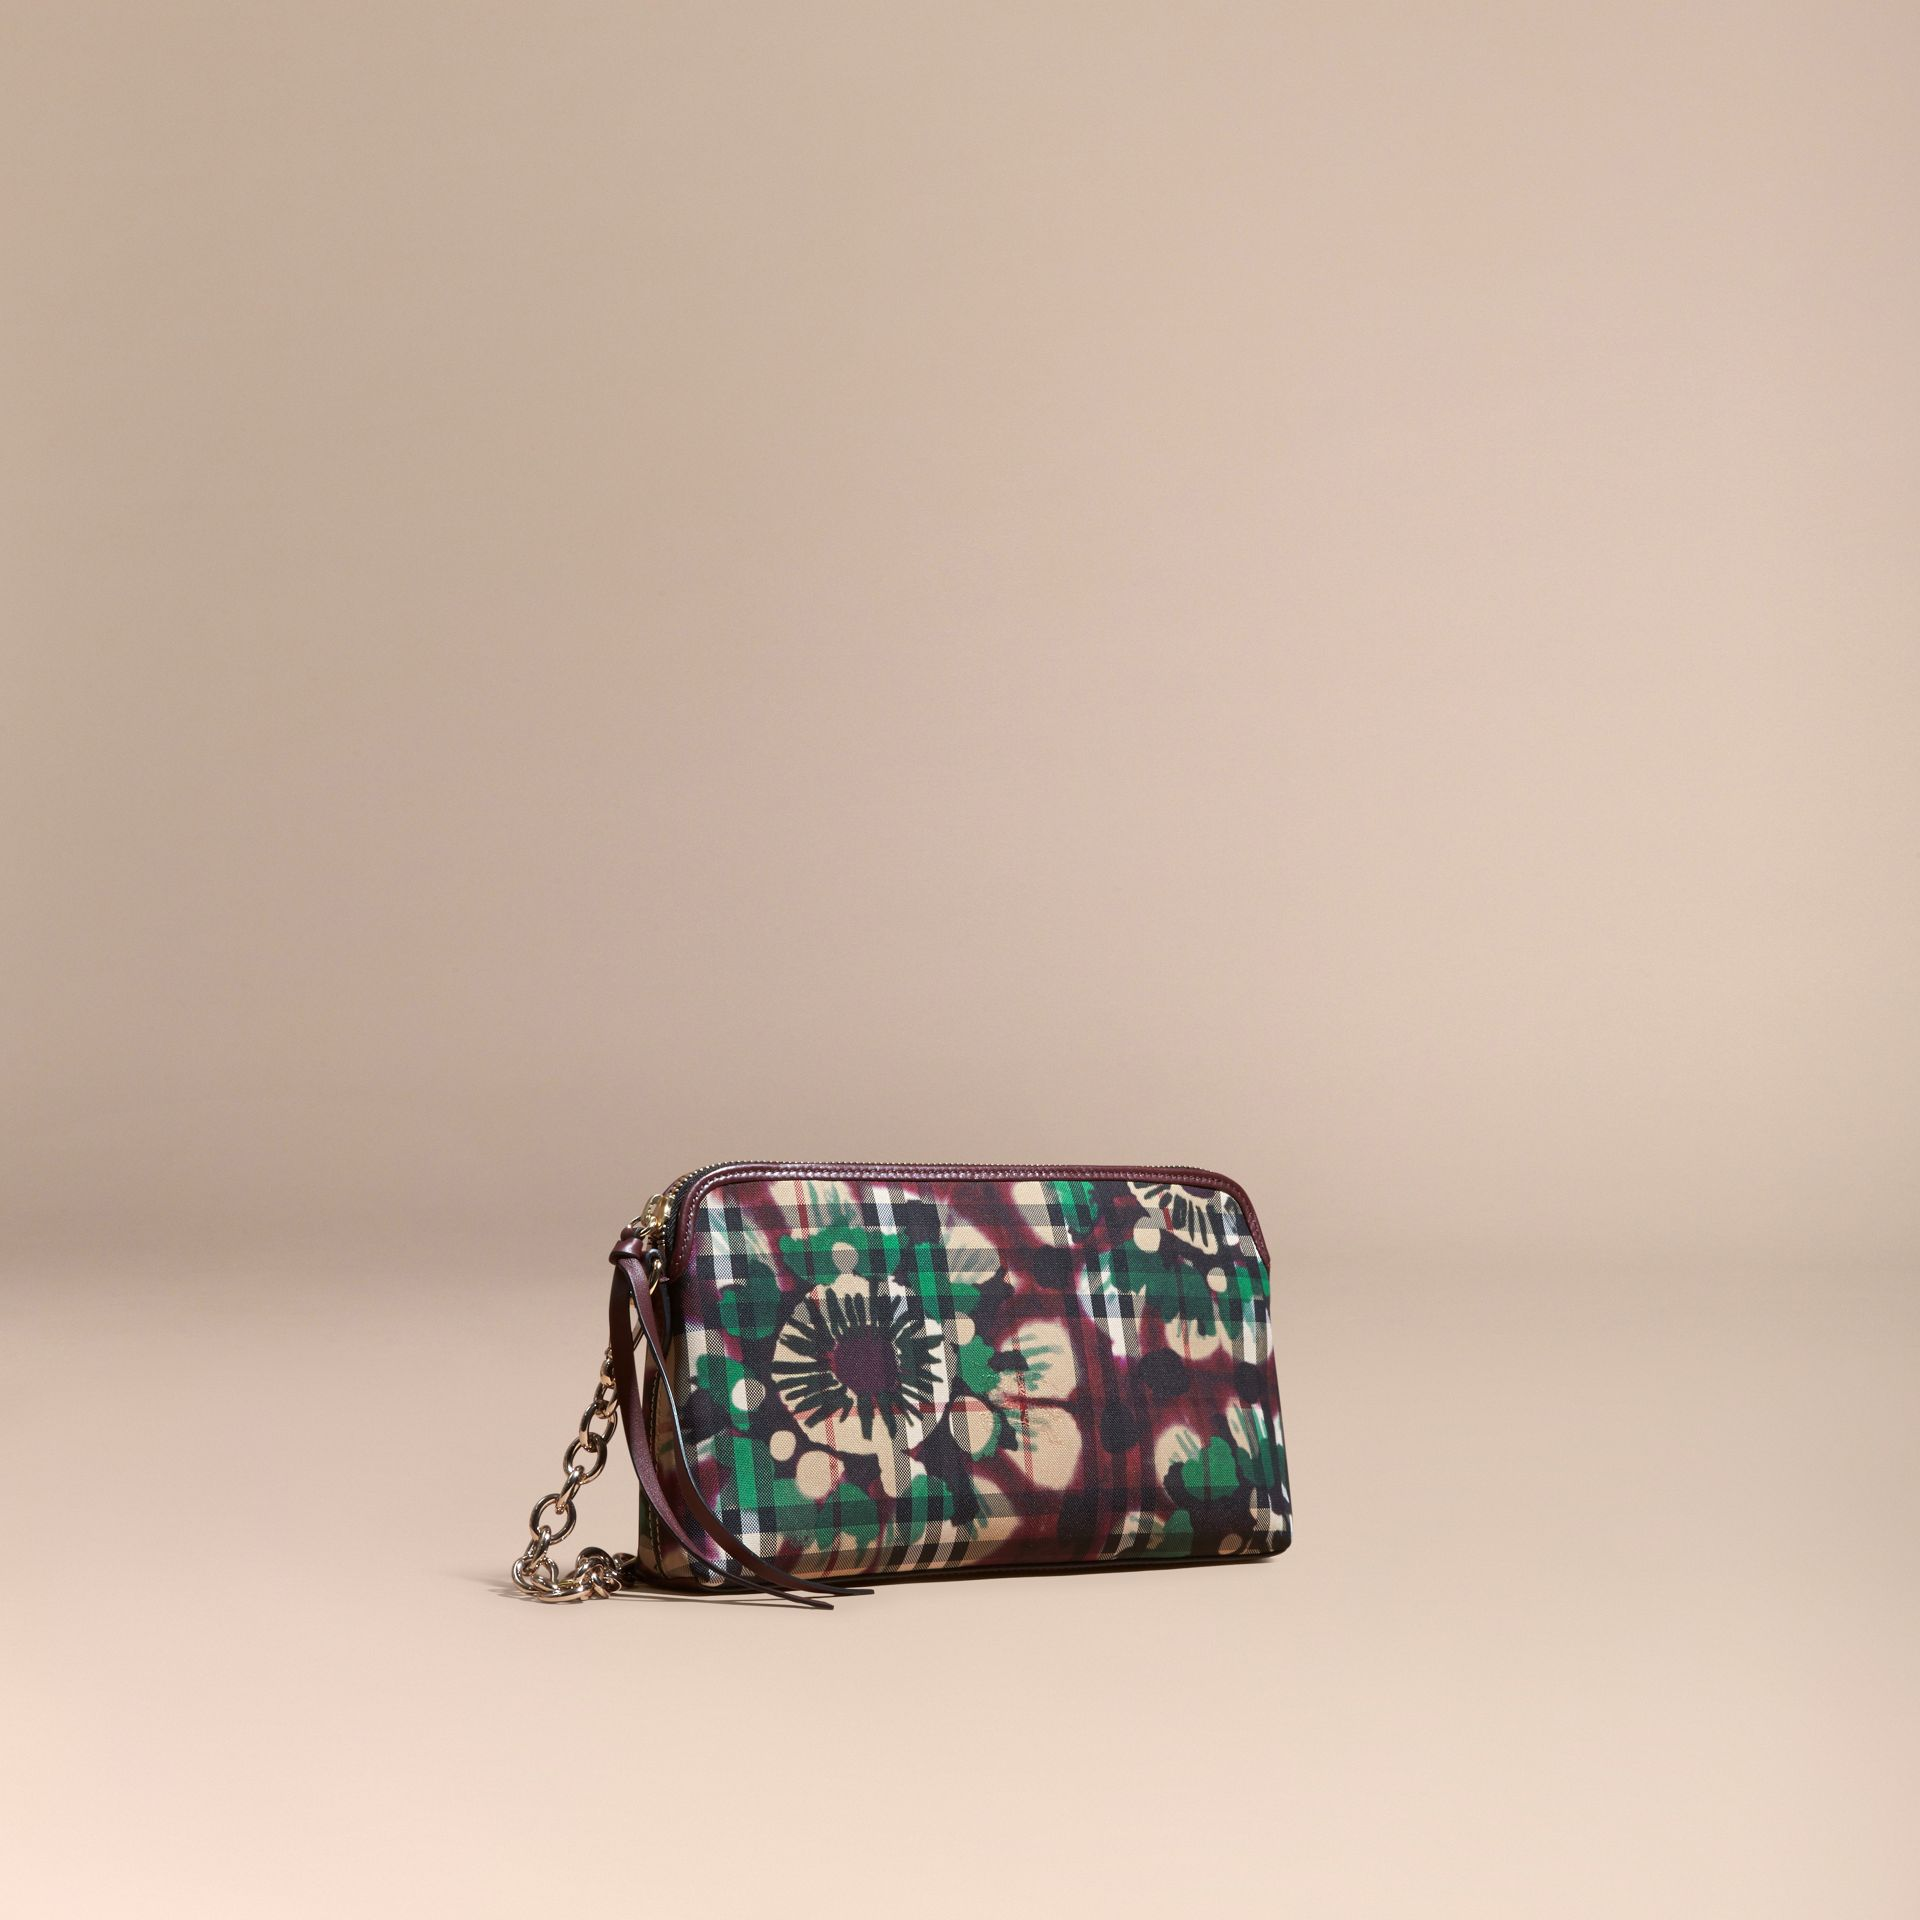 Deep claret Tie-dye Print Horseferry Check and Leather Clutch Bag Deep Claret - gallery image 1